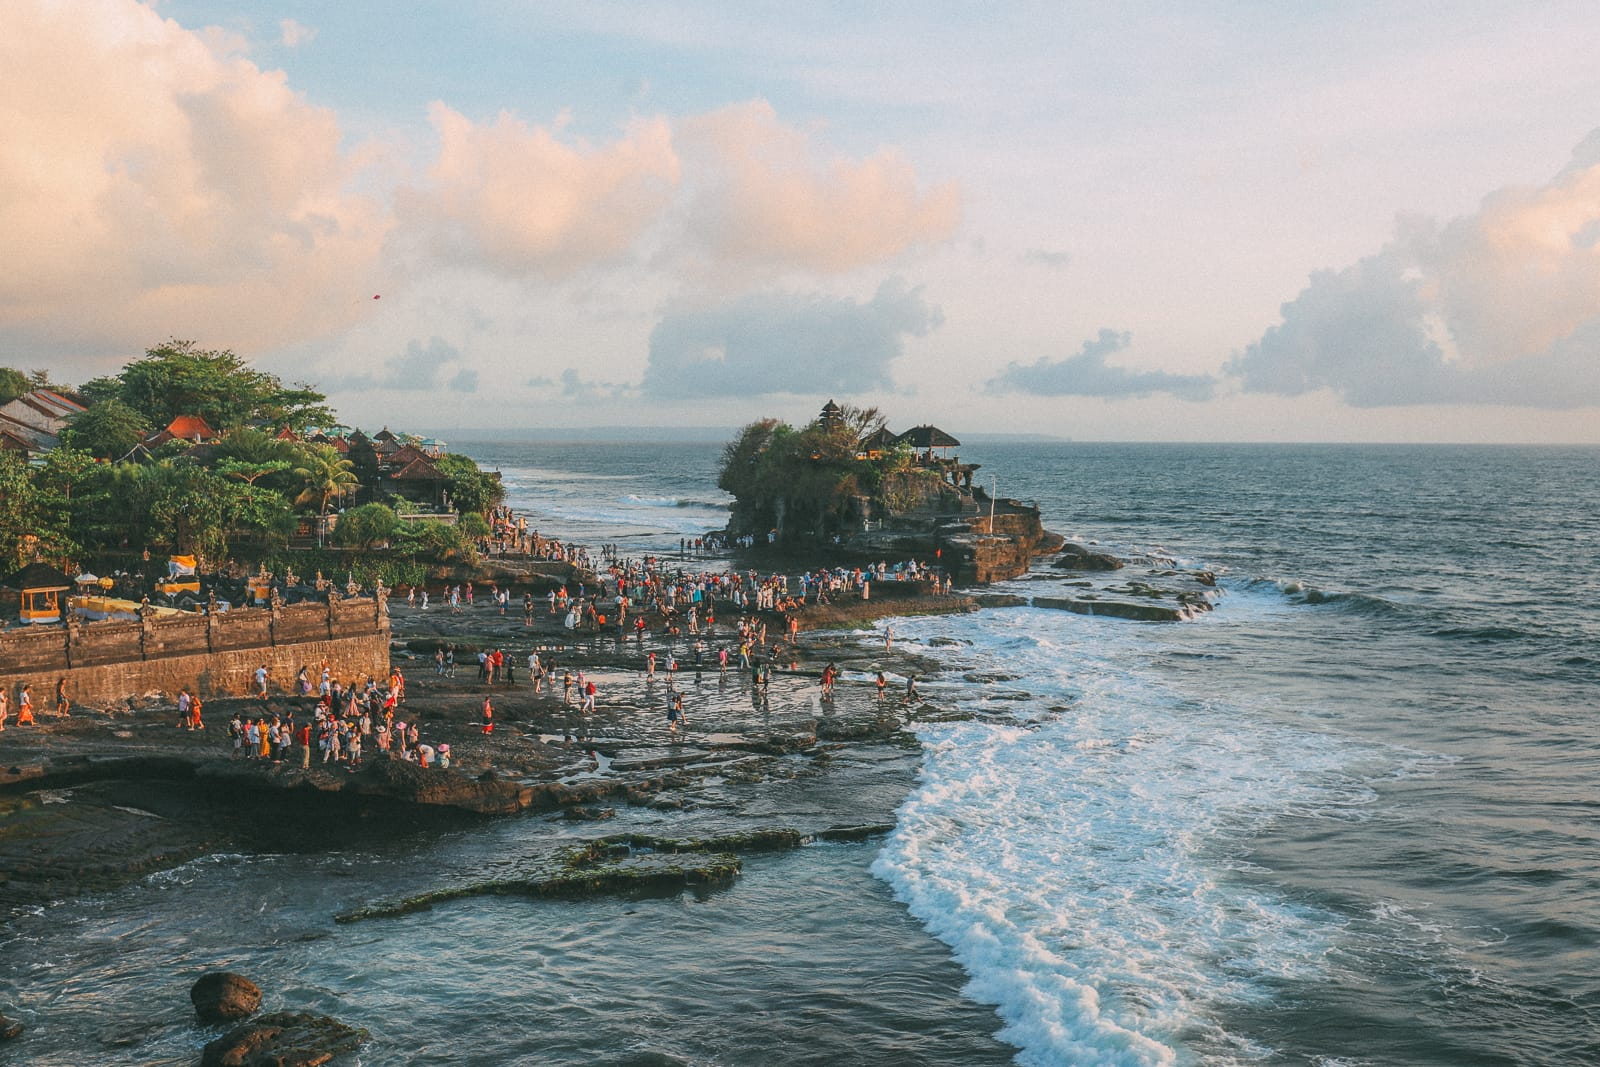 Bali Travel Diary - Ubud Palace, Uluwatu and Tanah Lot (29)